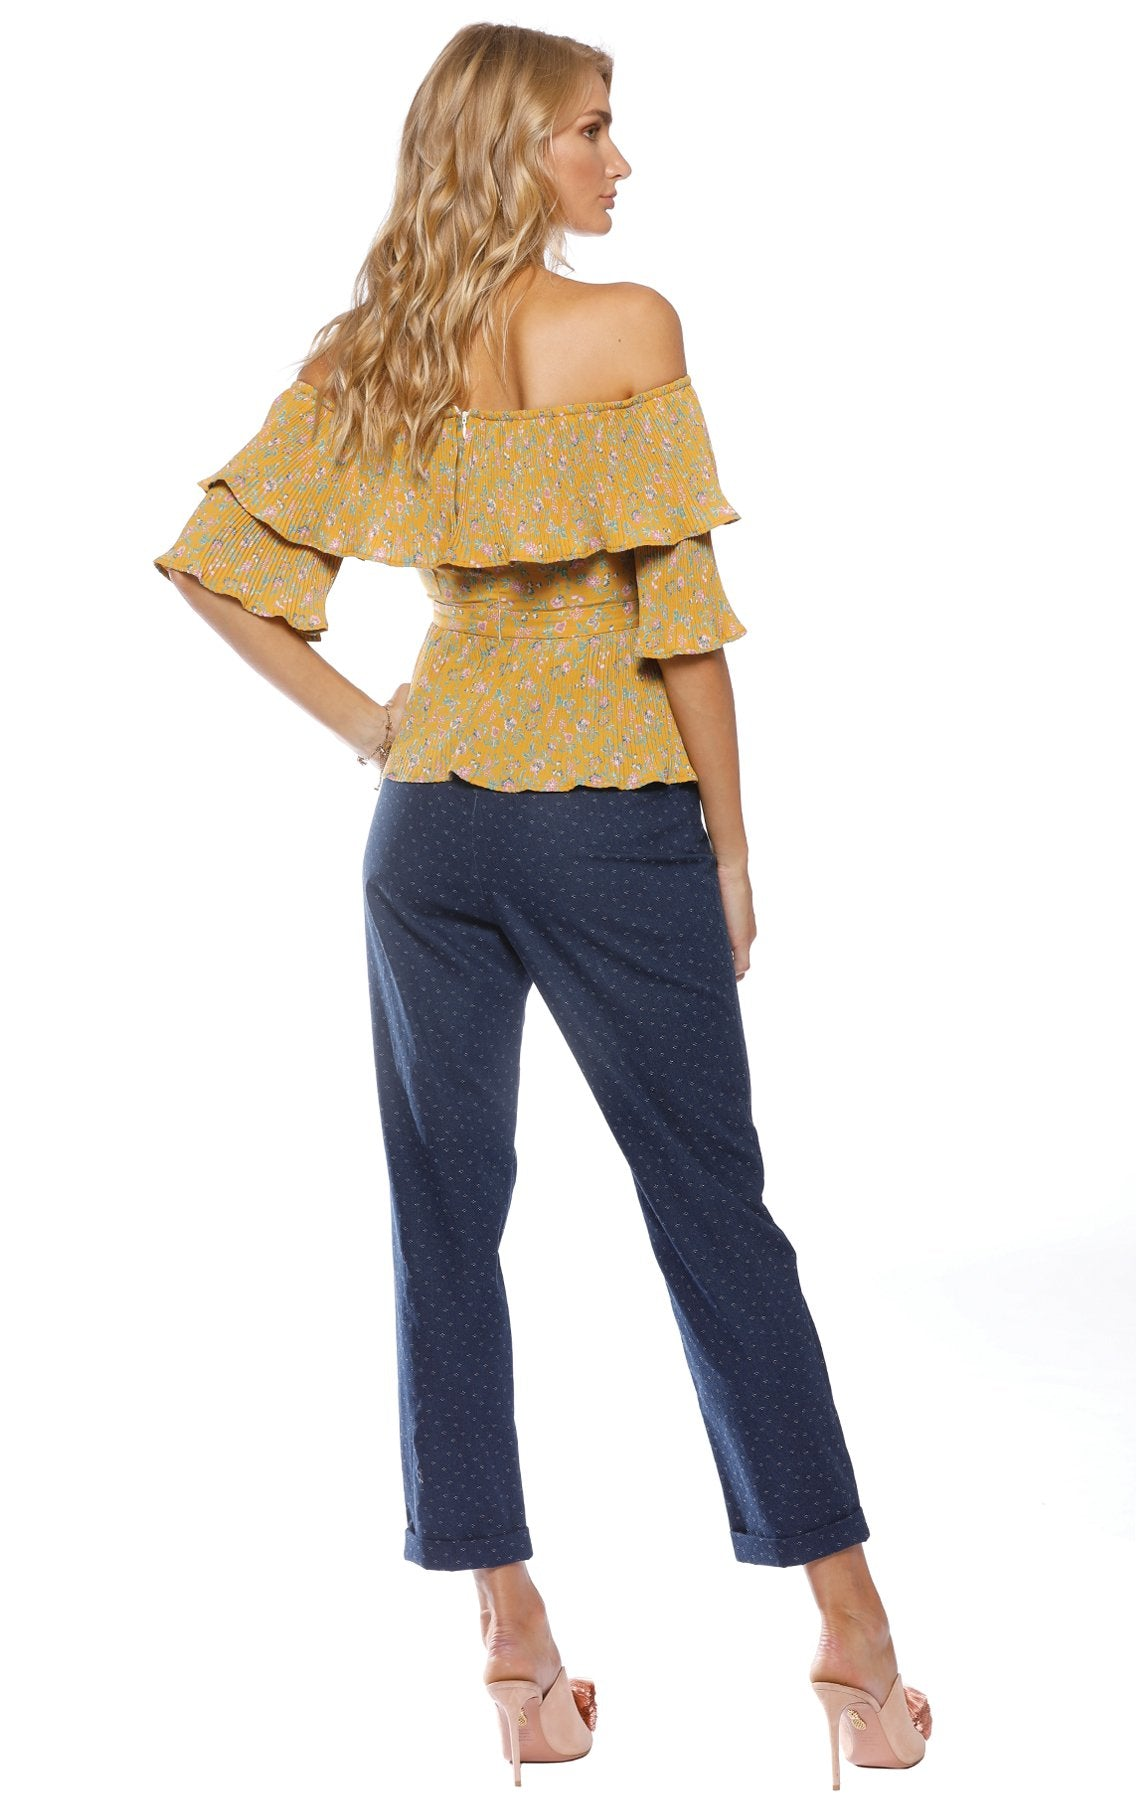 Pasduchas Sonny Pleat Blouse - Stevie May, The East Order, Talulah, Pasduchas, Everly Collective